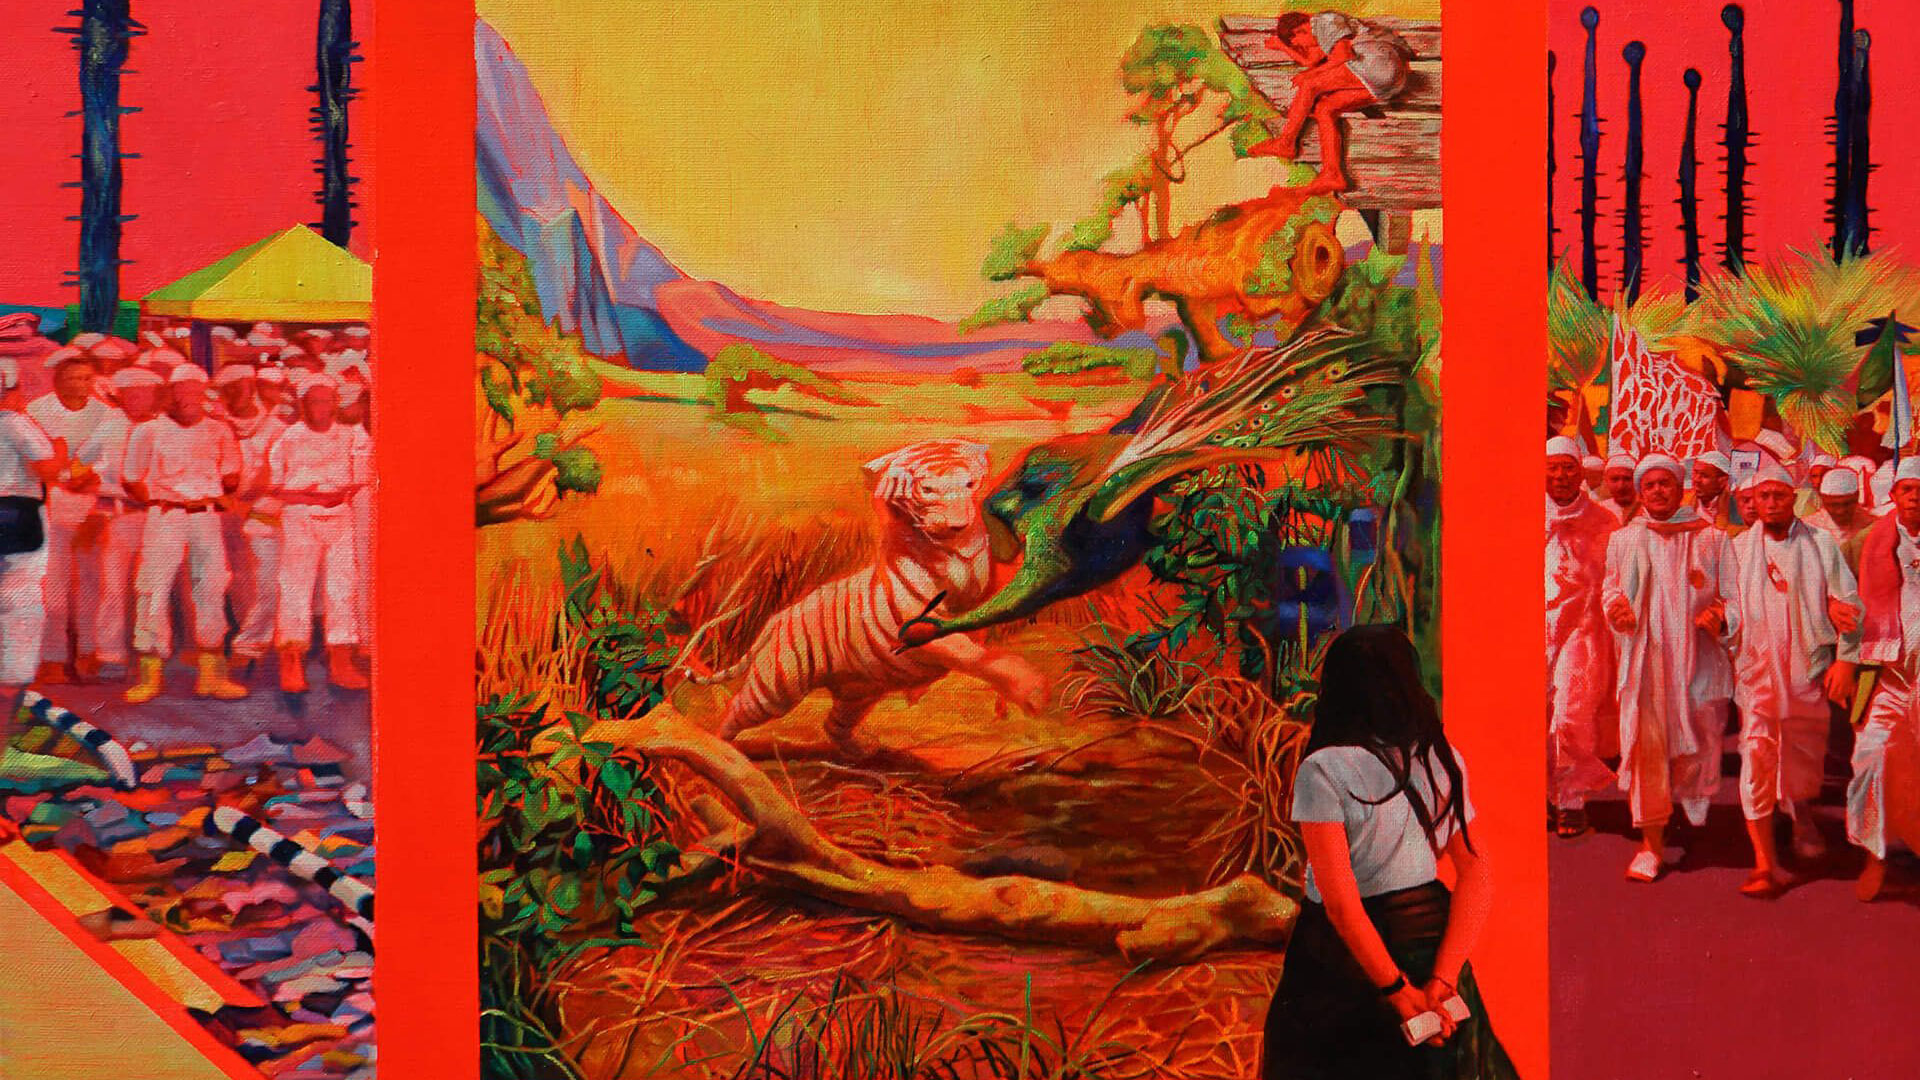 The 9th Asia Pacific Triennial of Contemporary Art (APT9